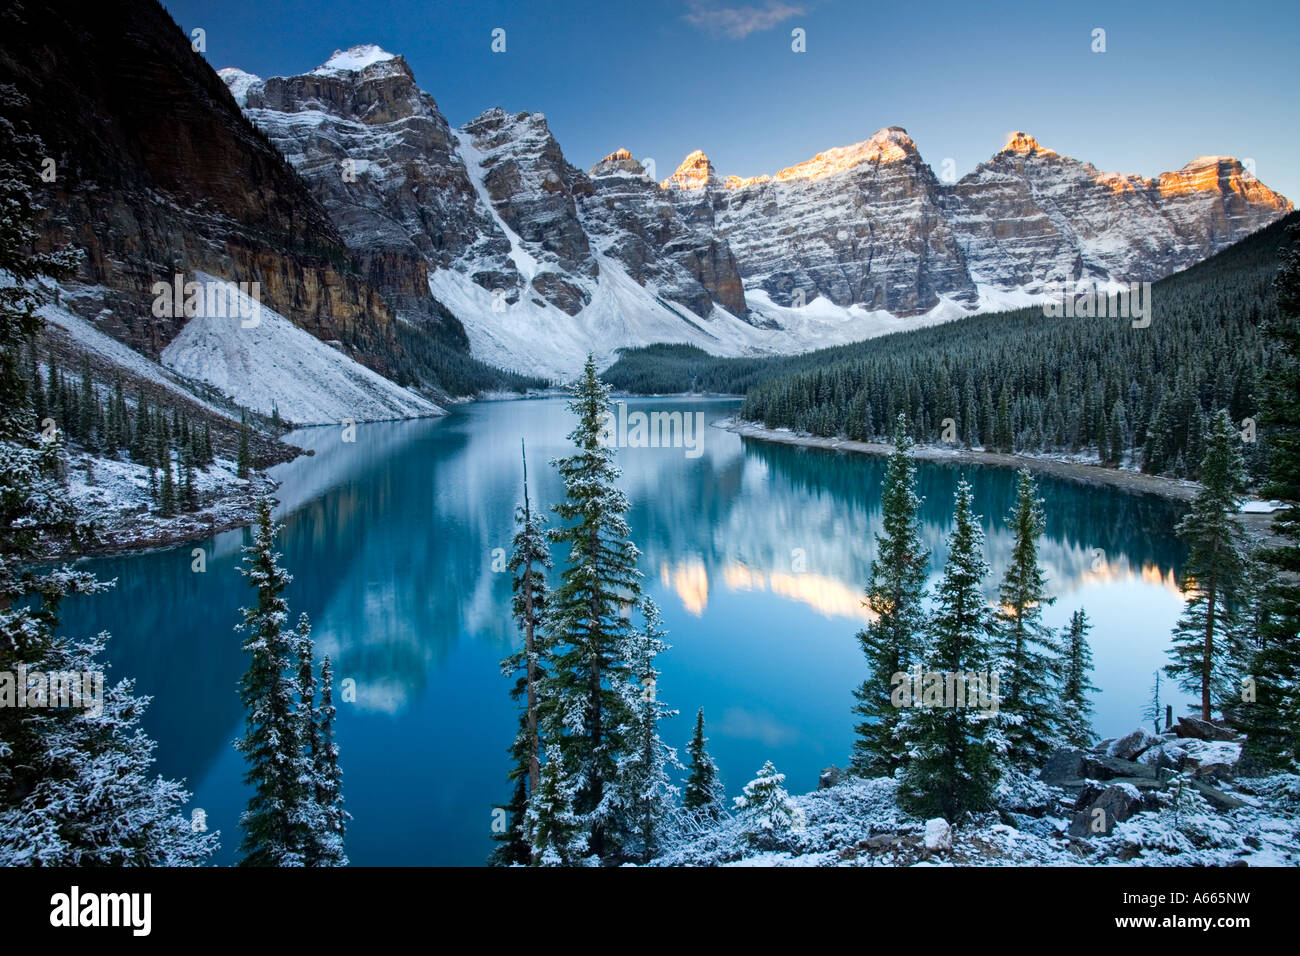 Winter Schnee am Moraine Lake, Banff National Park, kanadische Rockies Stockbild